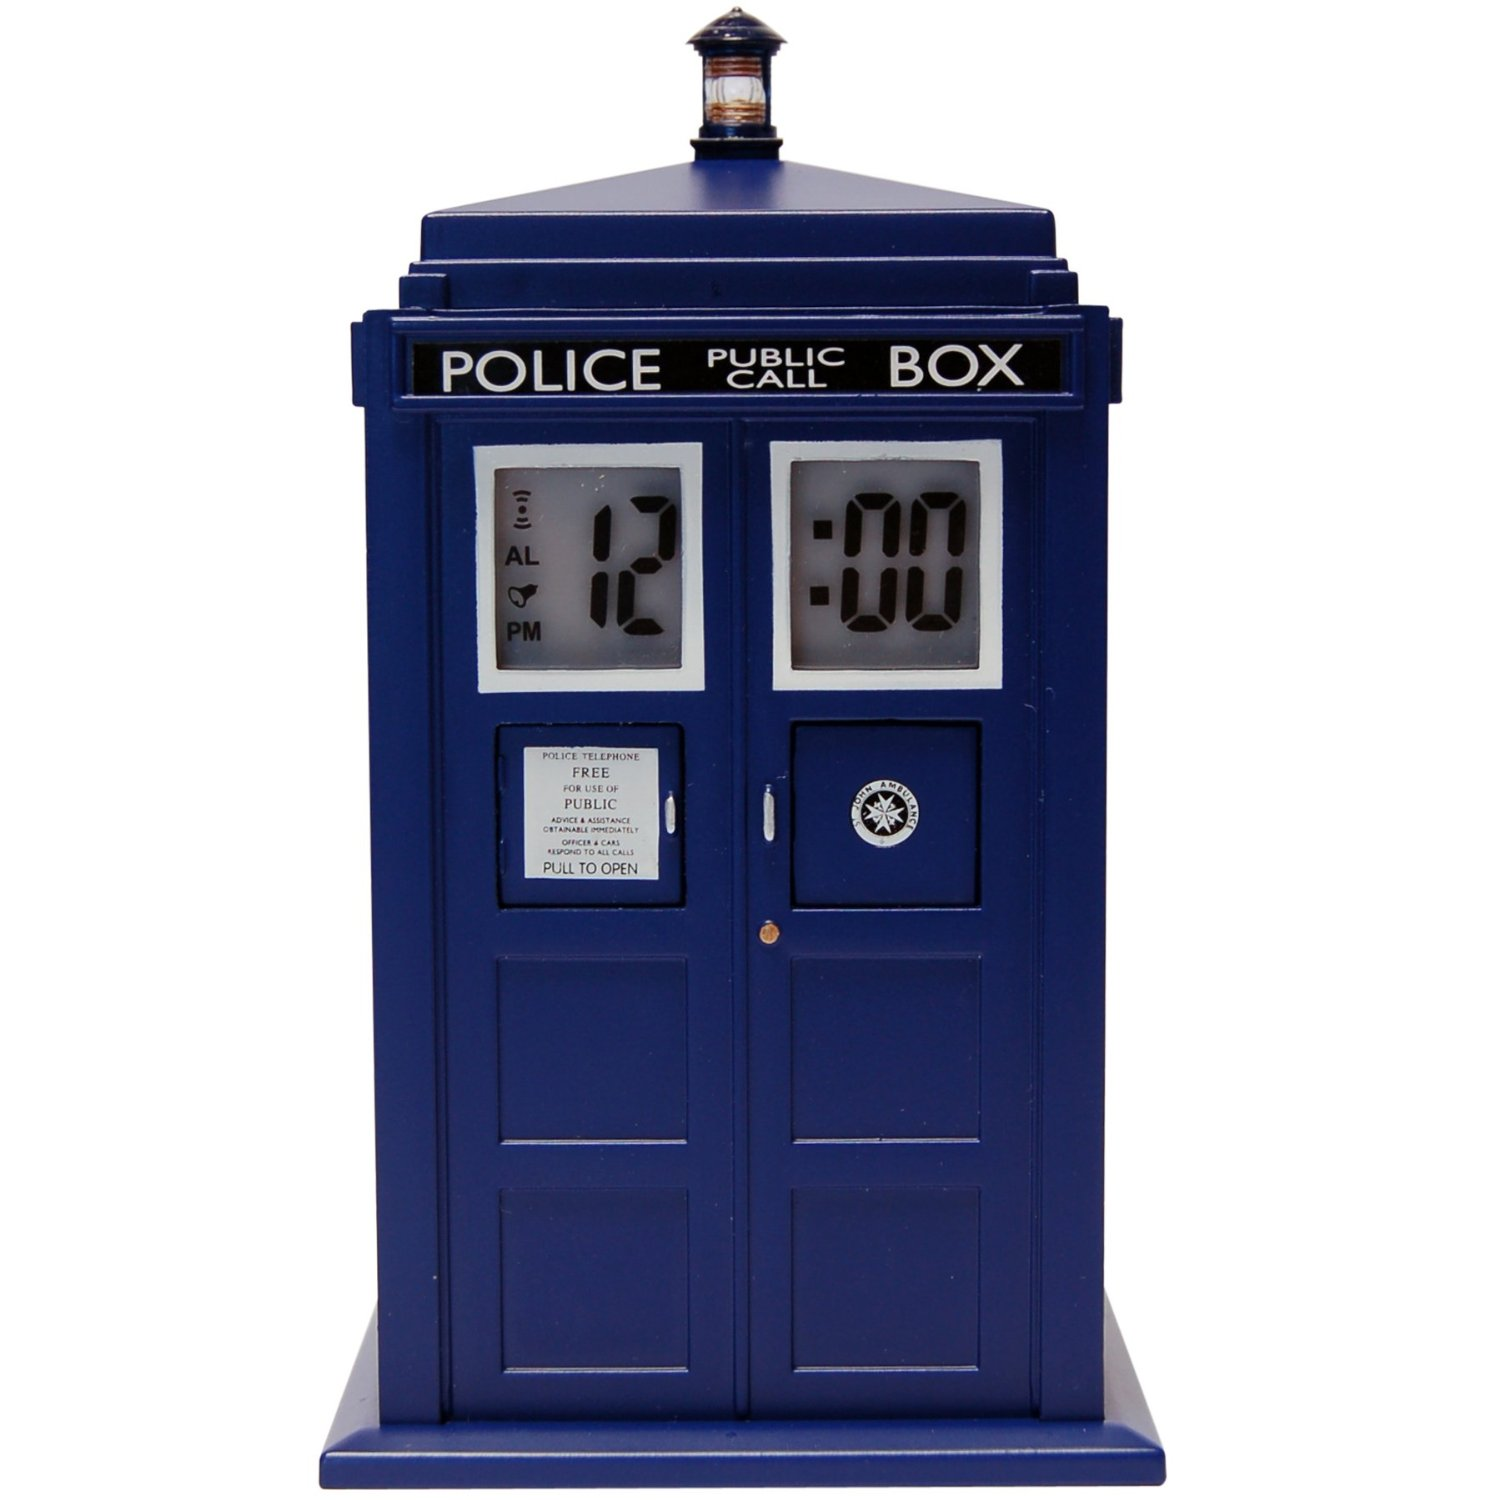 Doctor Who TARDIS Projection Alarm Clock  sc 1 st  Walmart & Doctor Who TARDIS Projection Alarm Clock - Walmart.com